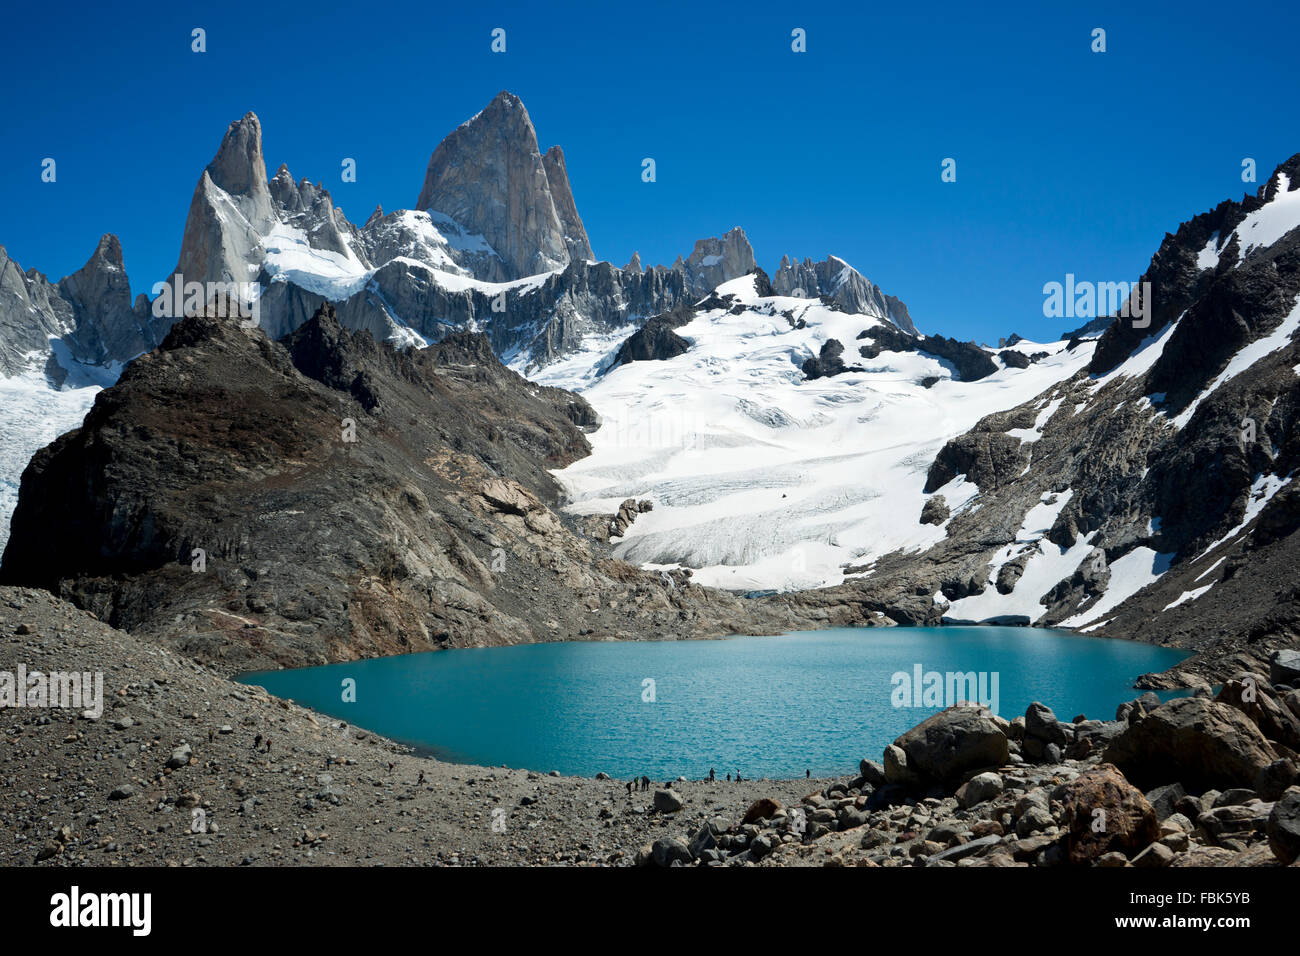 Patagonia; W Trek; Torres del Paine; Argentina; Landscape; Nature; Lake; Trekking; Adventure; Mountain; - Stock Image